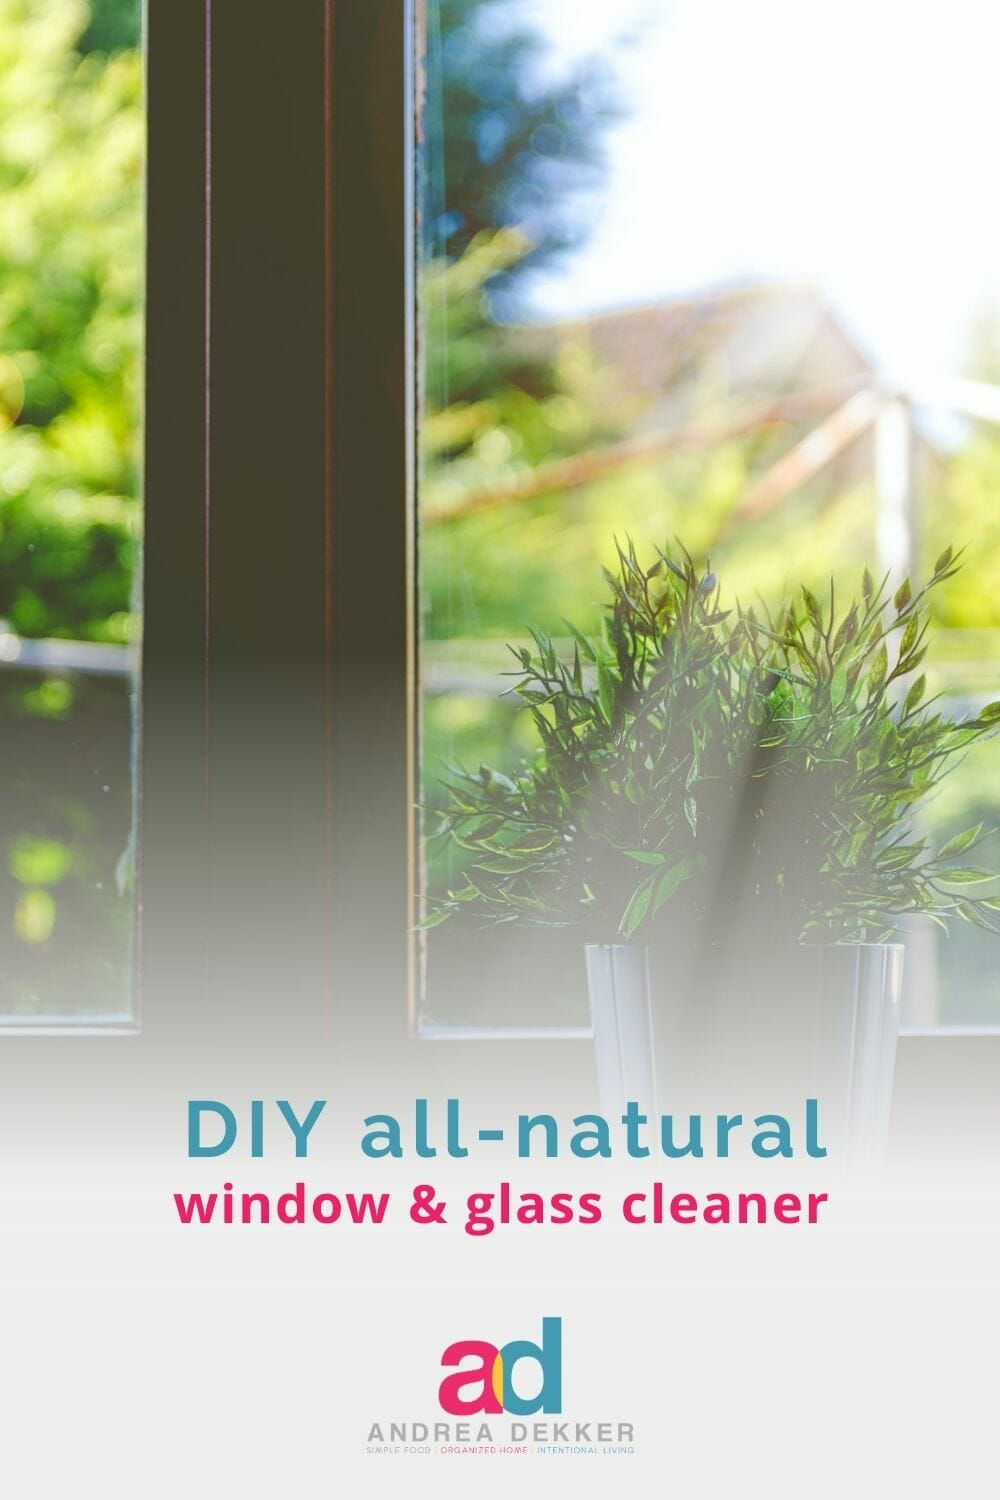 Stop using harsh chemicals to clean your windows, and instead, try my simple, all-natural window and glass cleaner that cleans better and faster than traditional store-bought cleaners! via @andreadekker